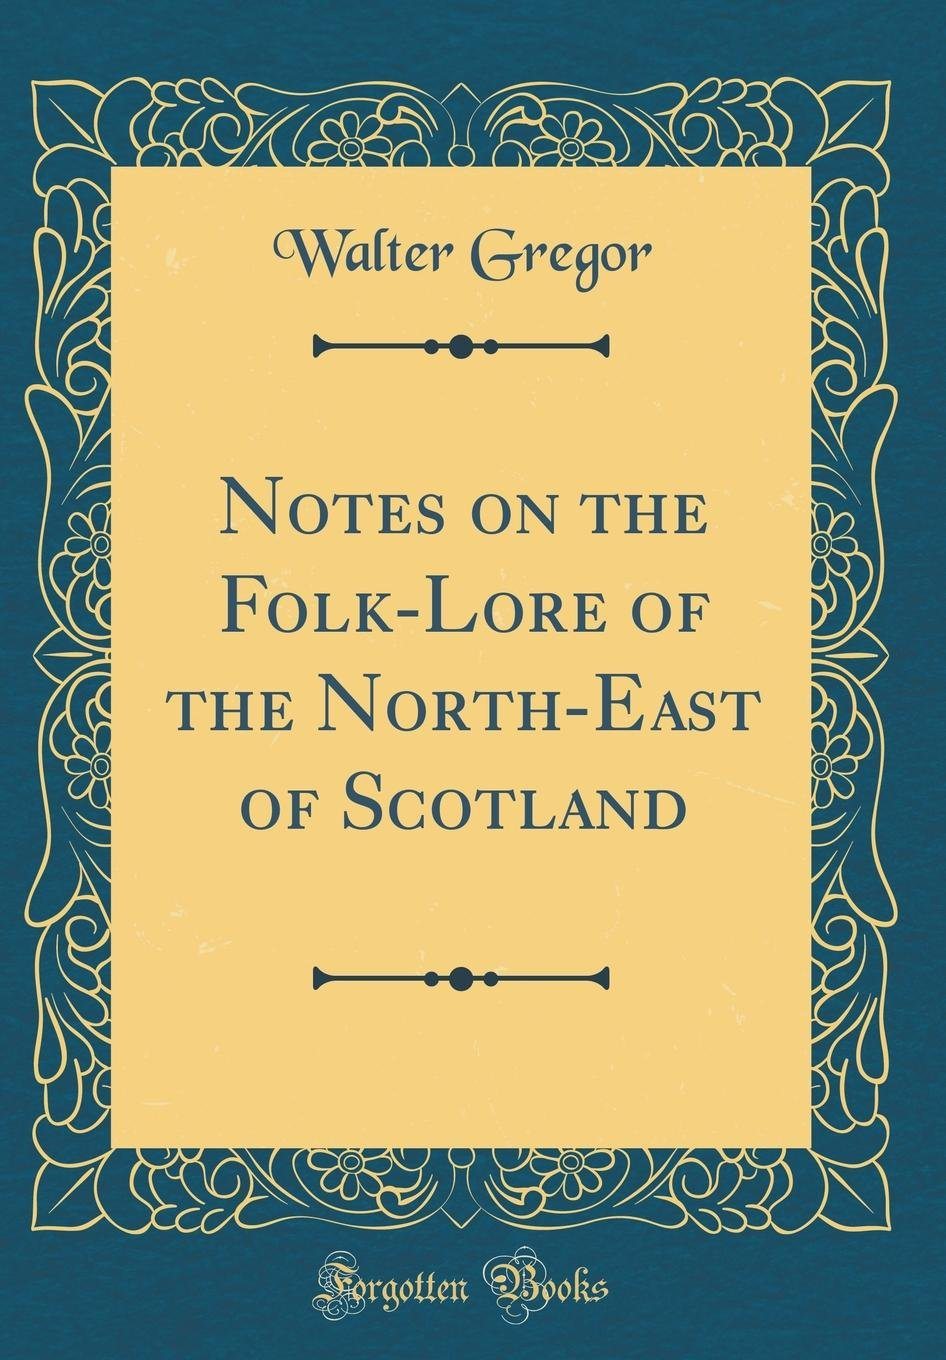 Download Notes on the Folk-Lore of the North-East of Scotland (Classic Reprint) PDF